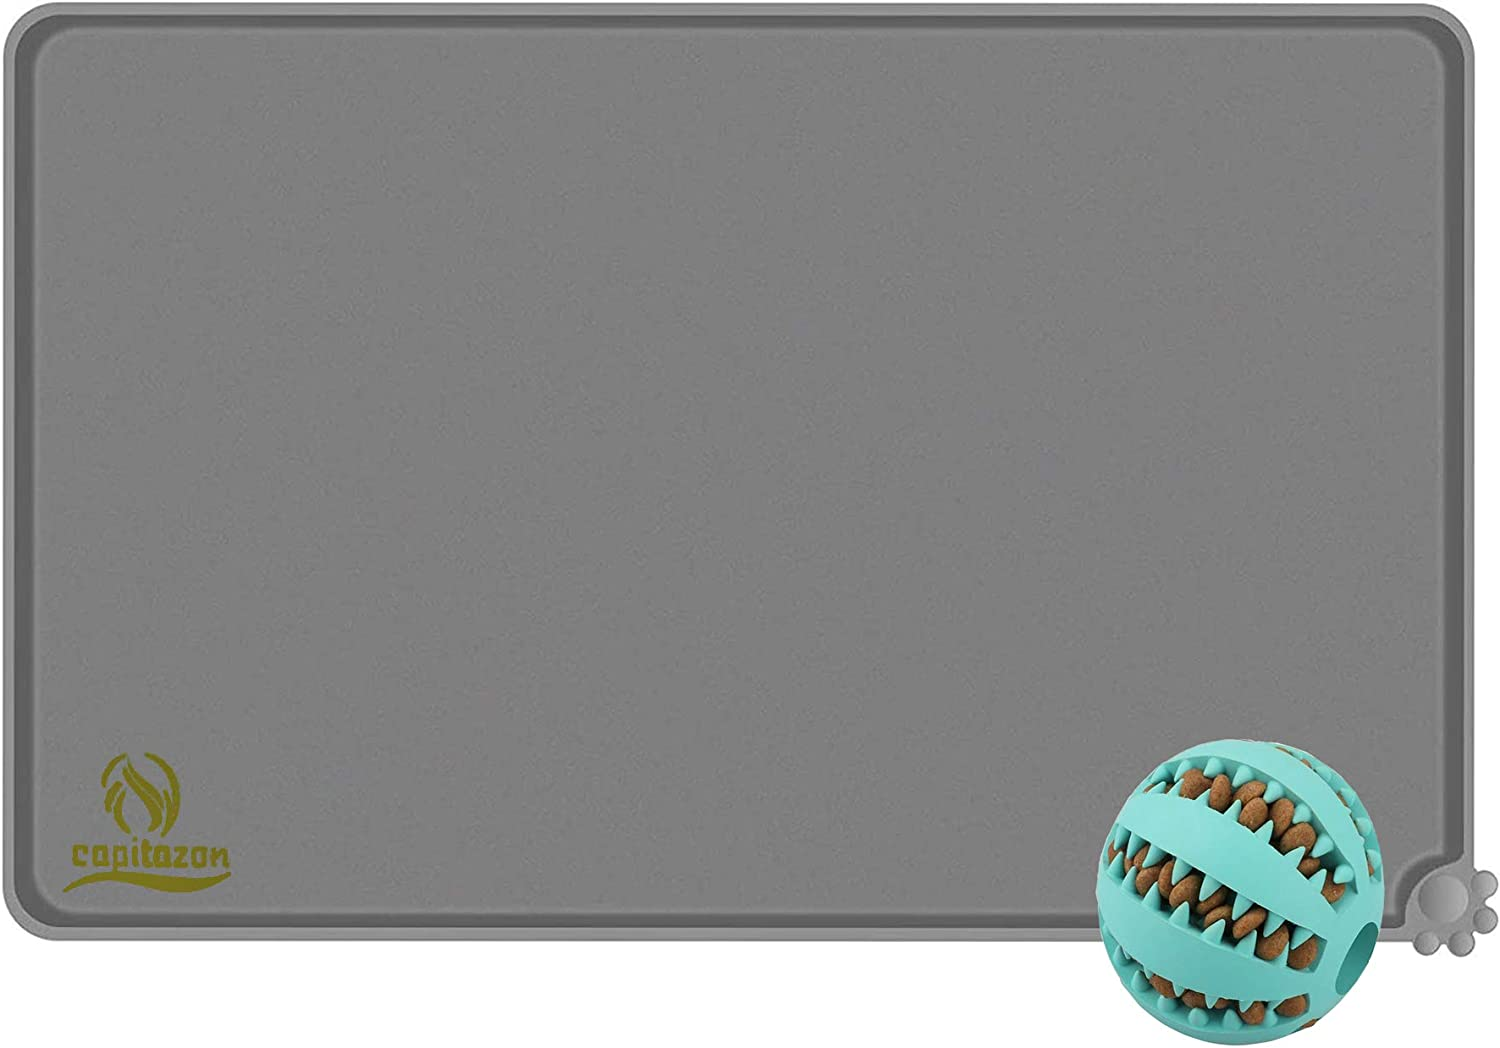 Capitazon Cat Dog Bowl Mat (18x12) Pet Feeding Mat with Chewing Ball | Waterproof Silicone Pet Placement Mat Tray with Raised Edges Nonslip & Easy to Wash | Dog Teething Toy for Chewing & Treat Ball